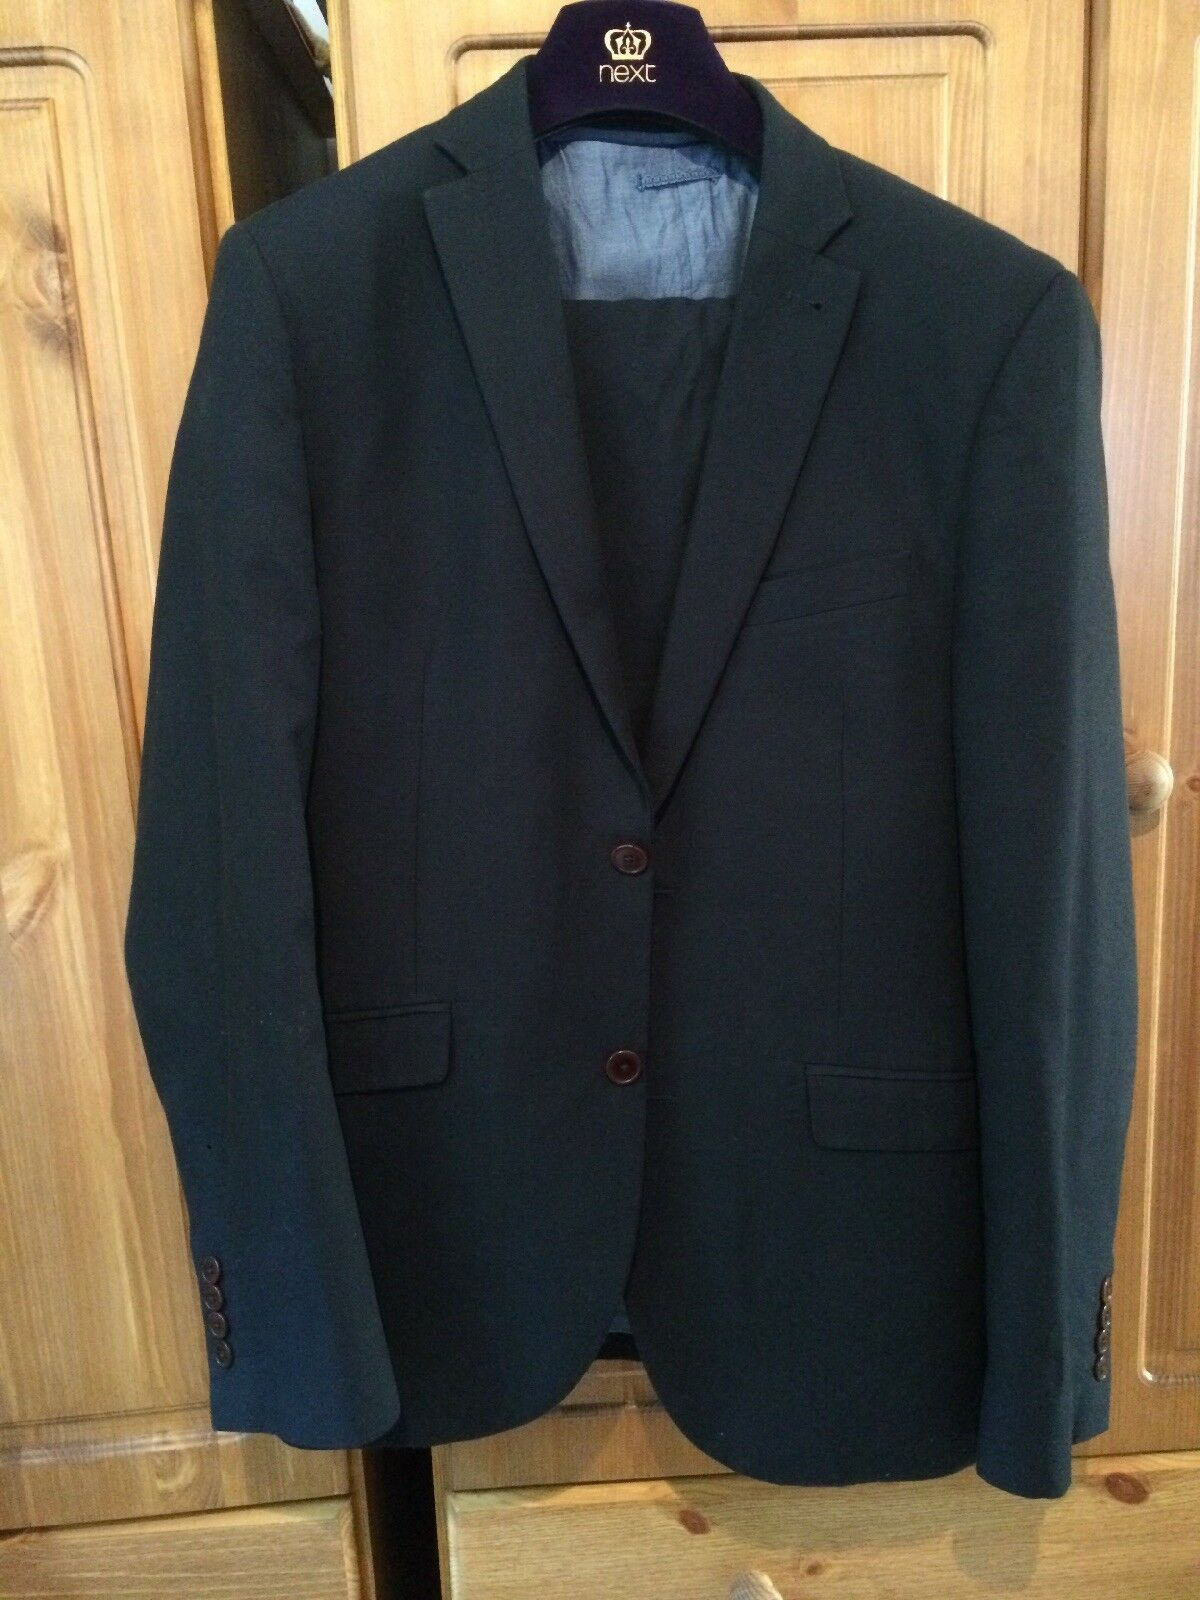 "f6fa06790 Dark 3 Peice Suit 40 38"" Chest bluee nvaxoa3599-Suits & Suit ..."